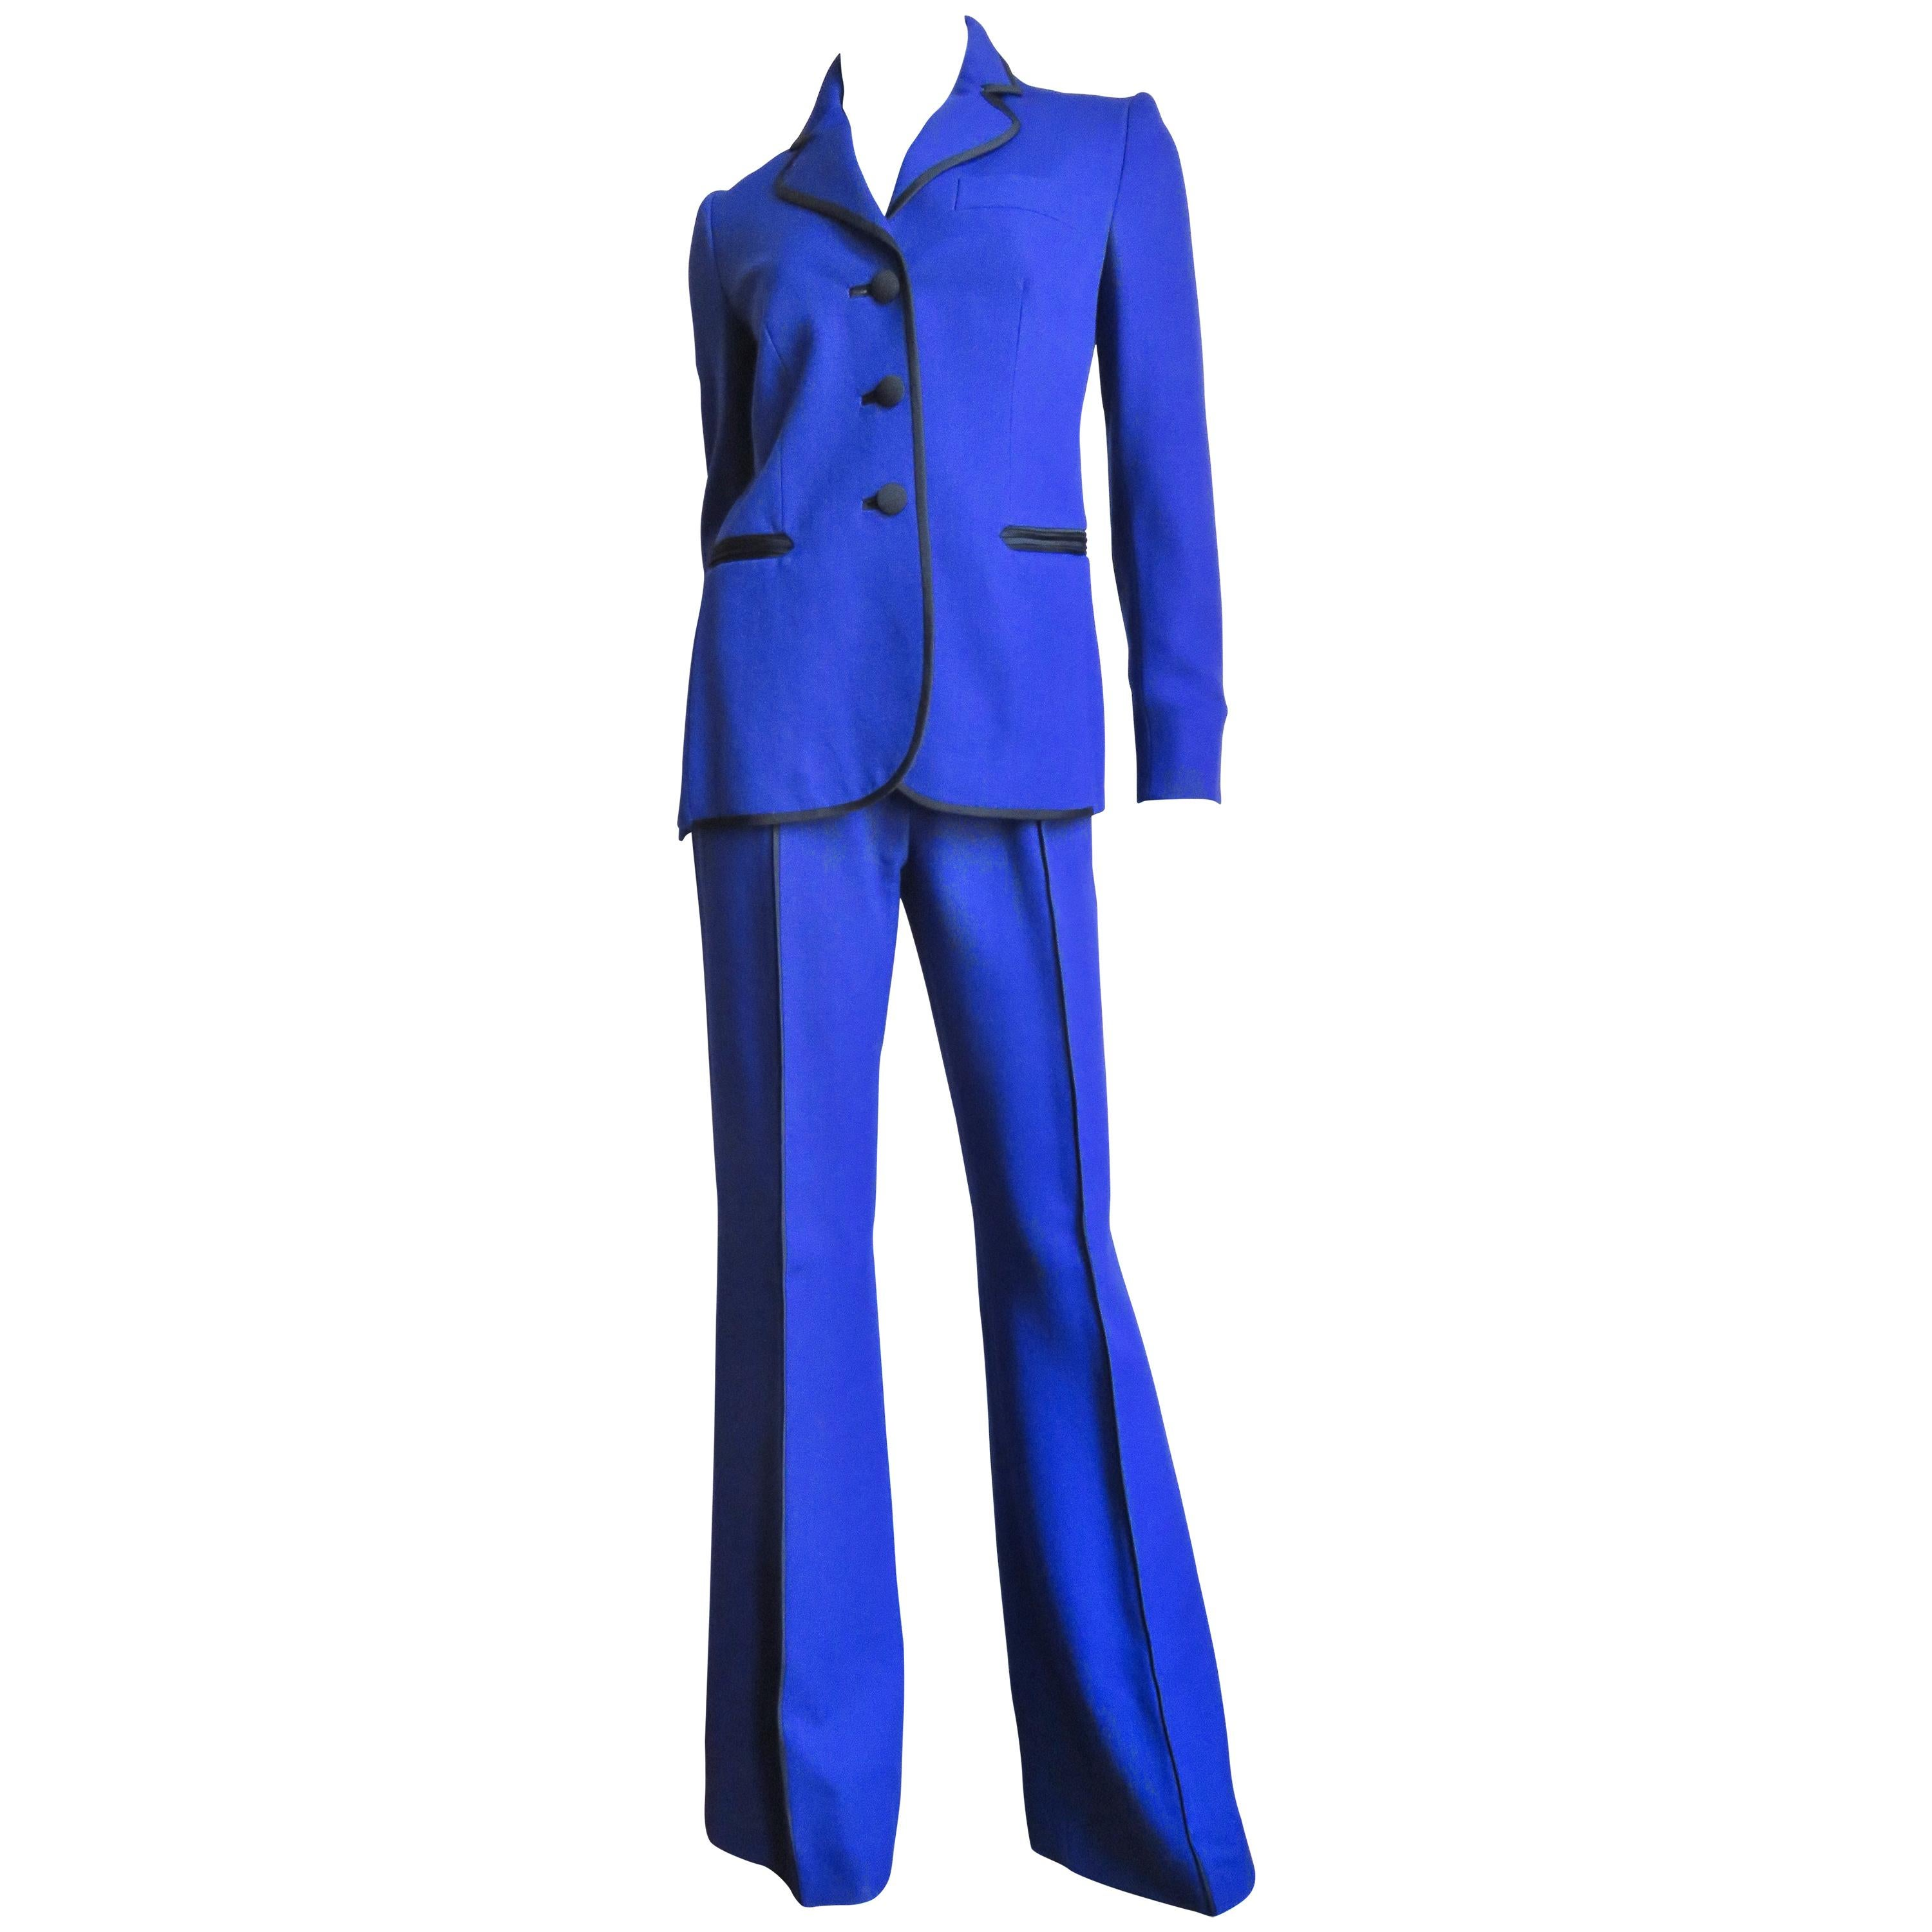 Moschino Pant Suit with Embroidered Eyes in Back